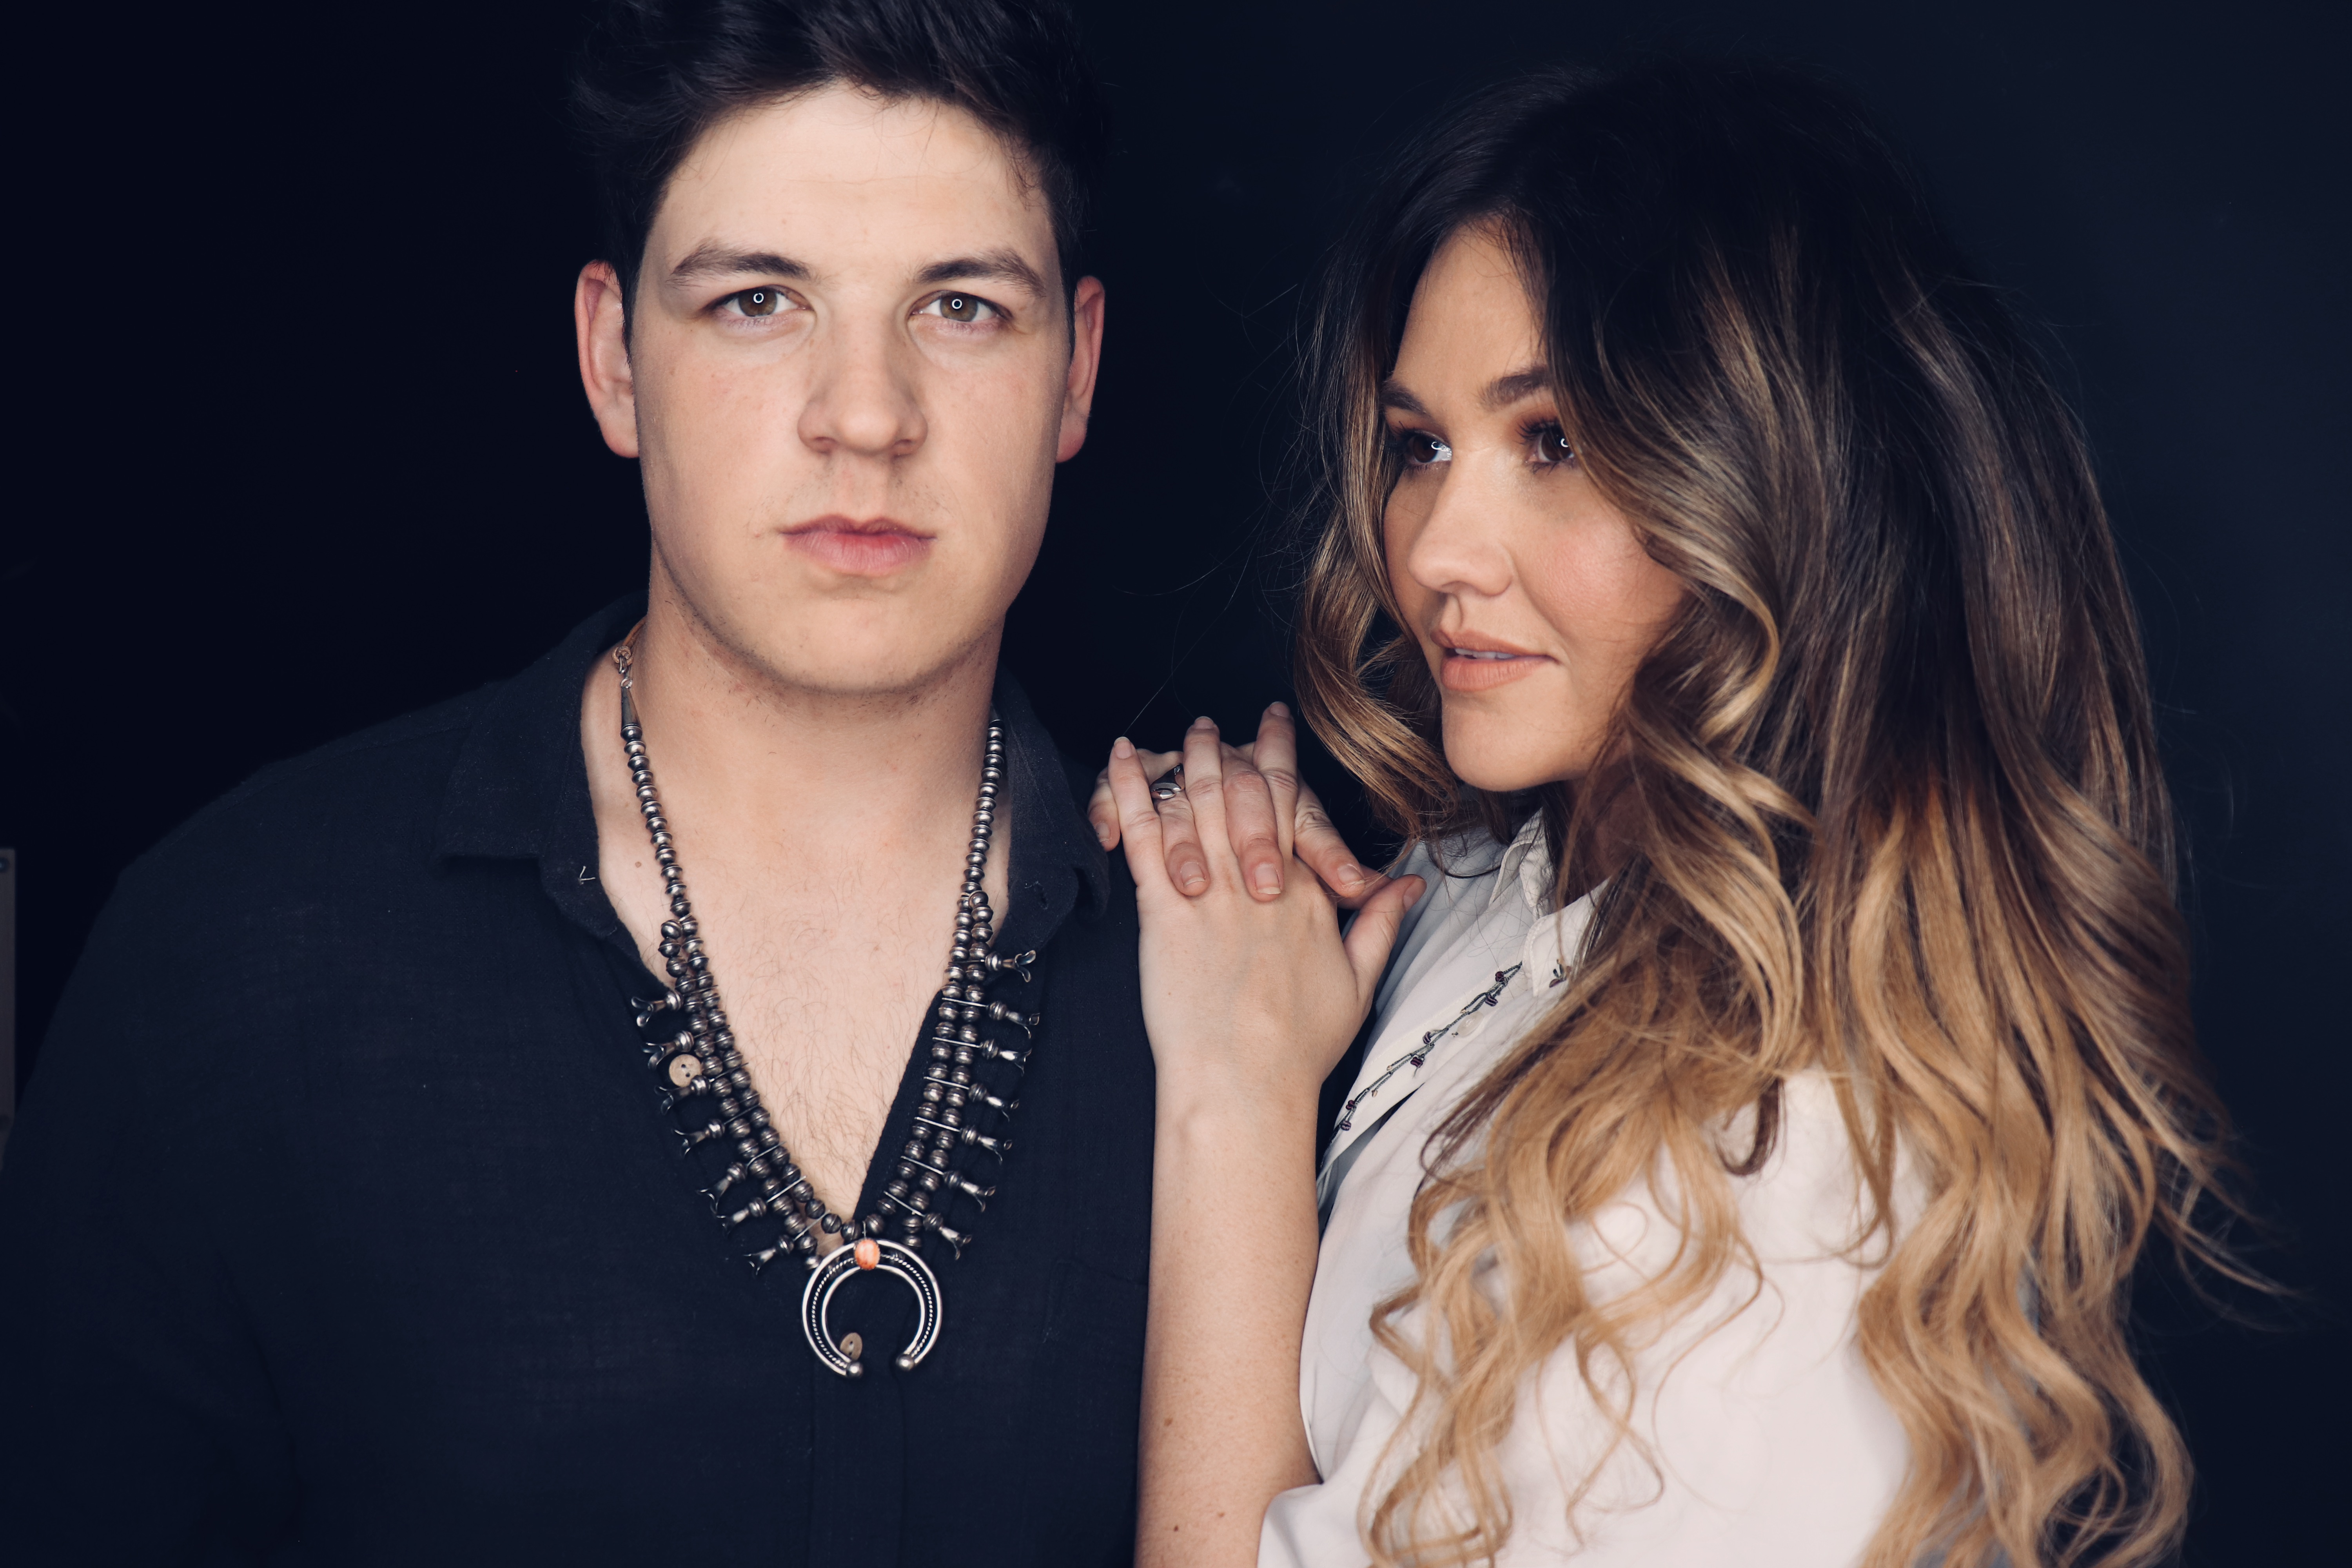 Rising stars debut new track and prepare to hit the road